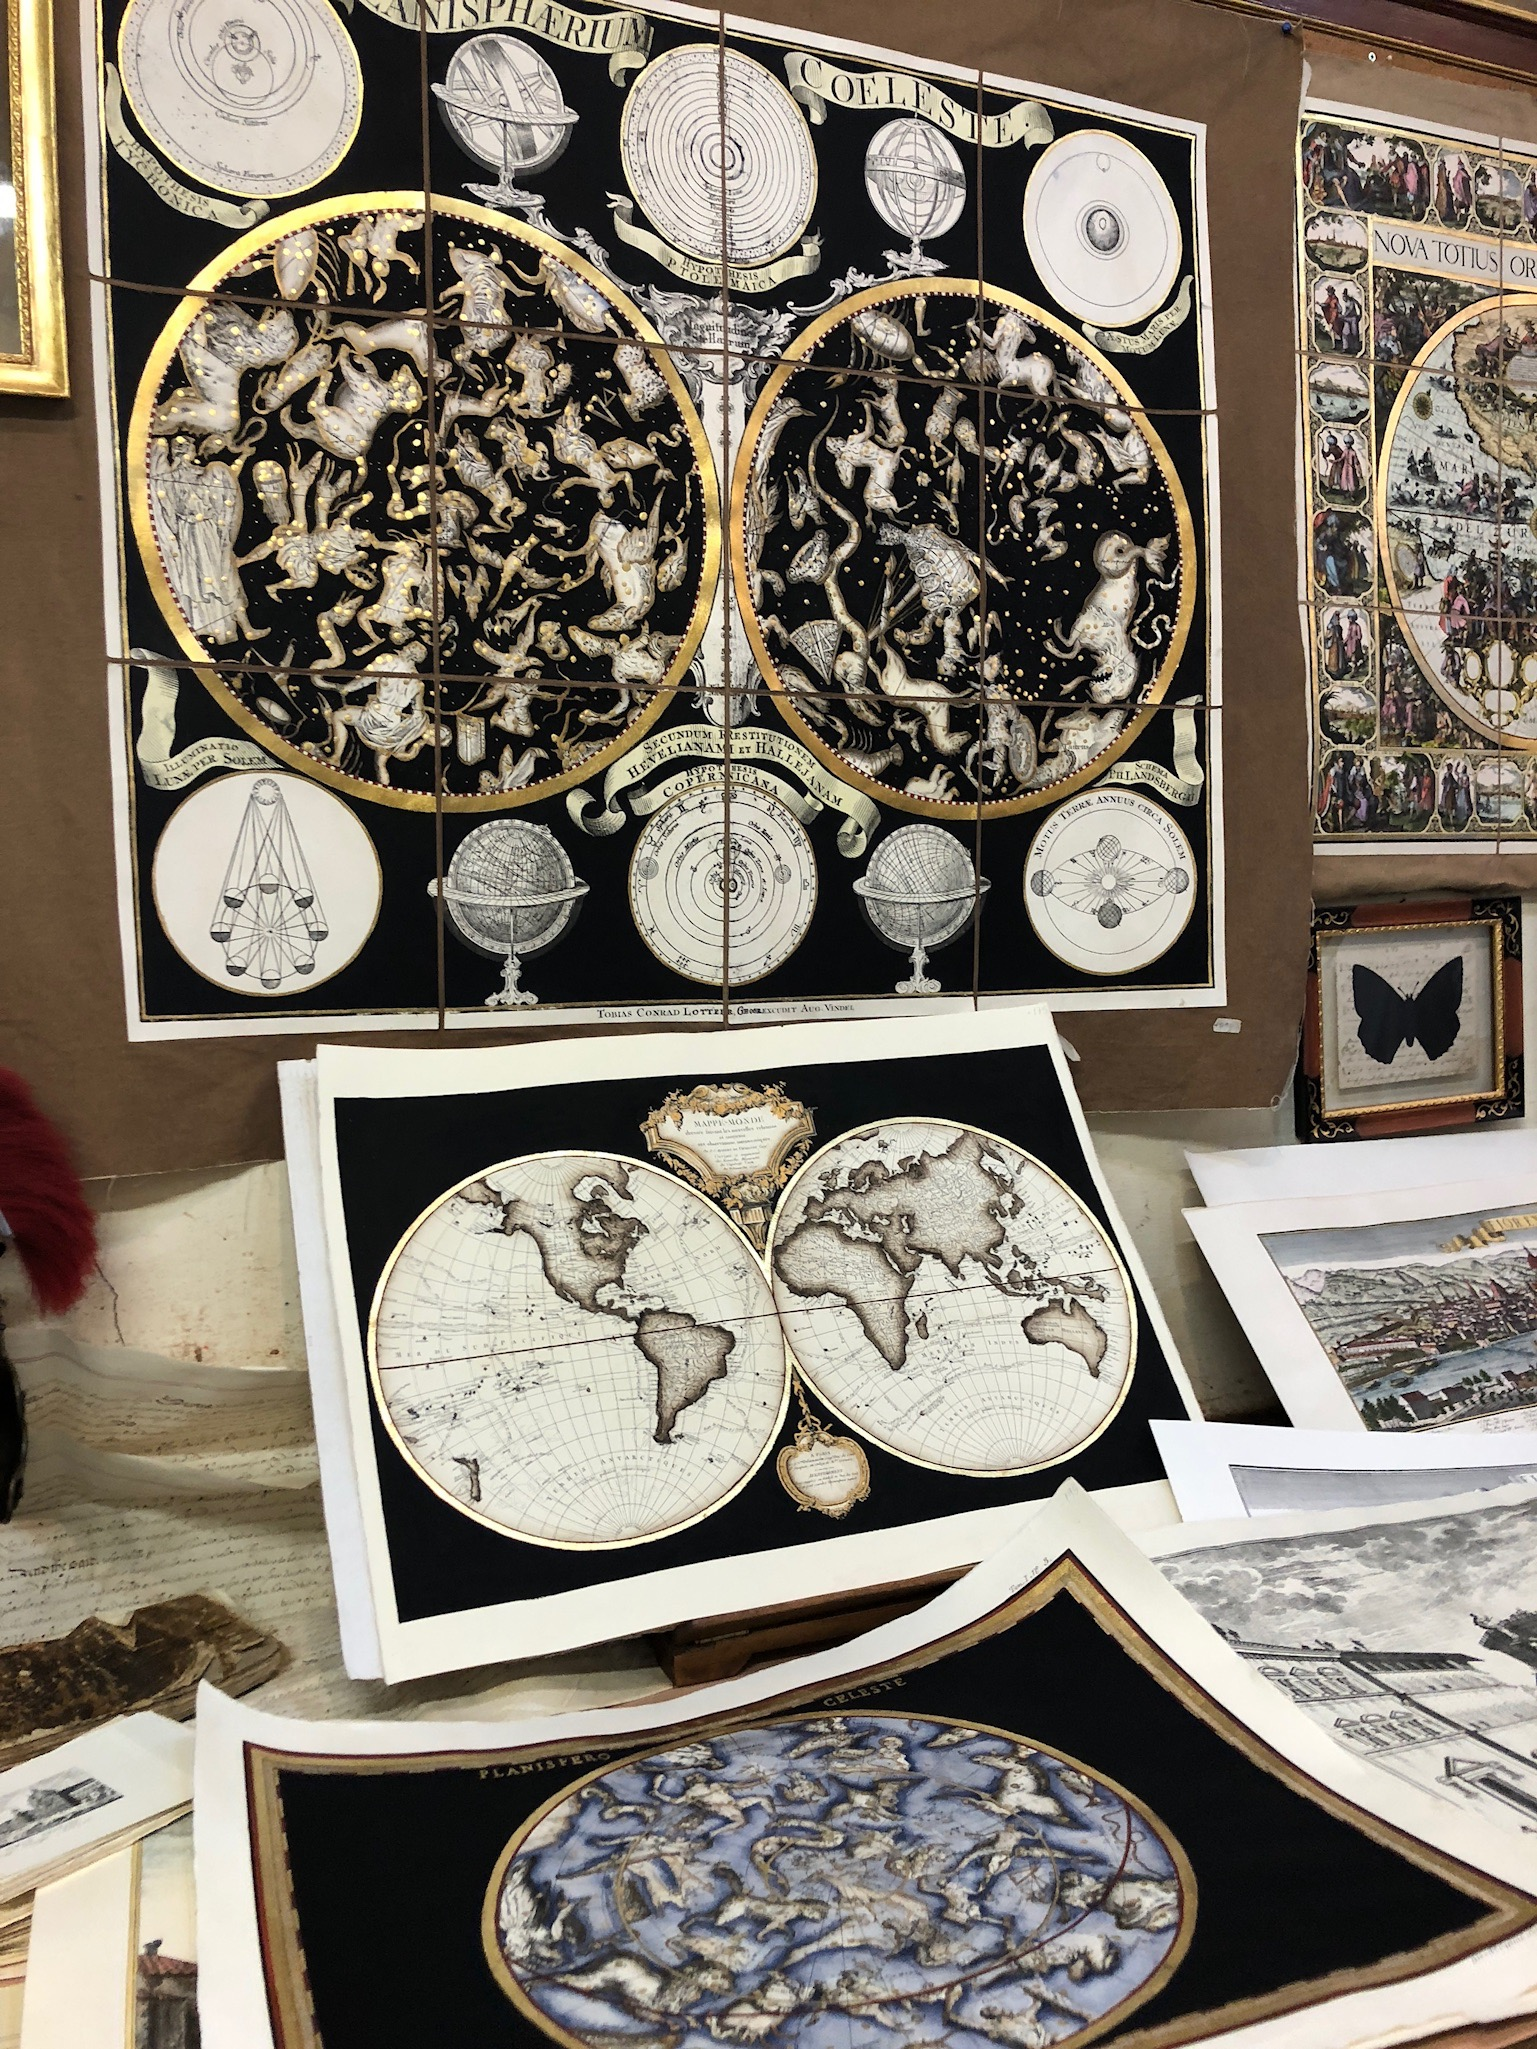 Beautiful hand-made prints of historic Florence and maps were for sale in this authentic artisan shop.